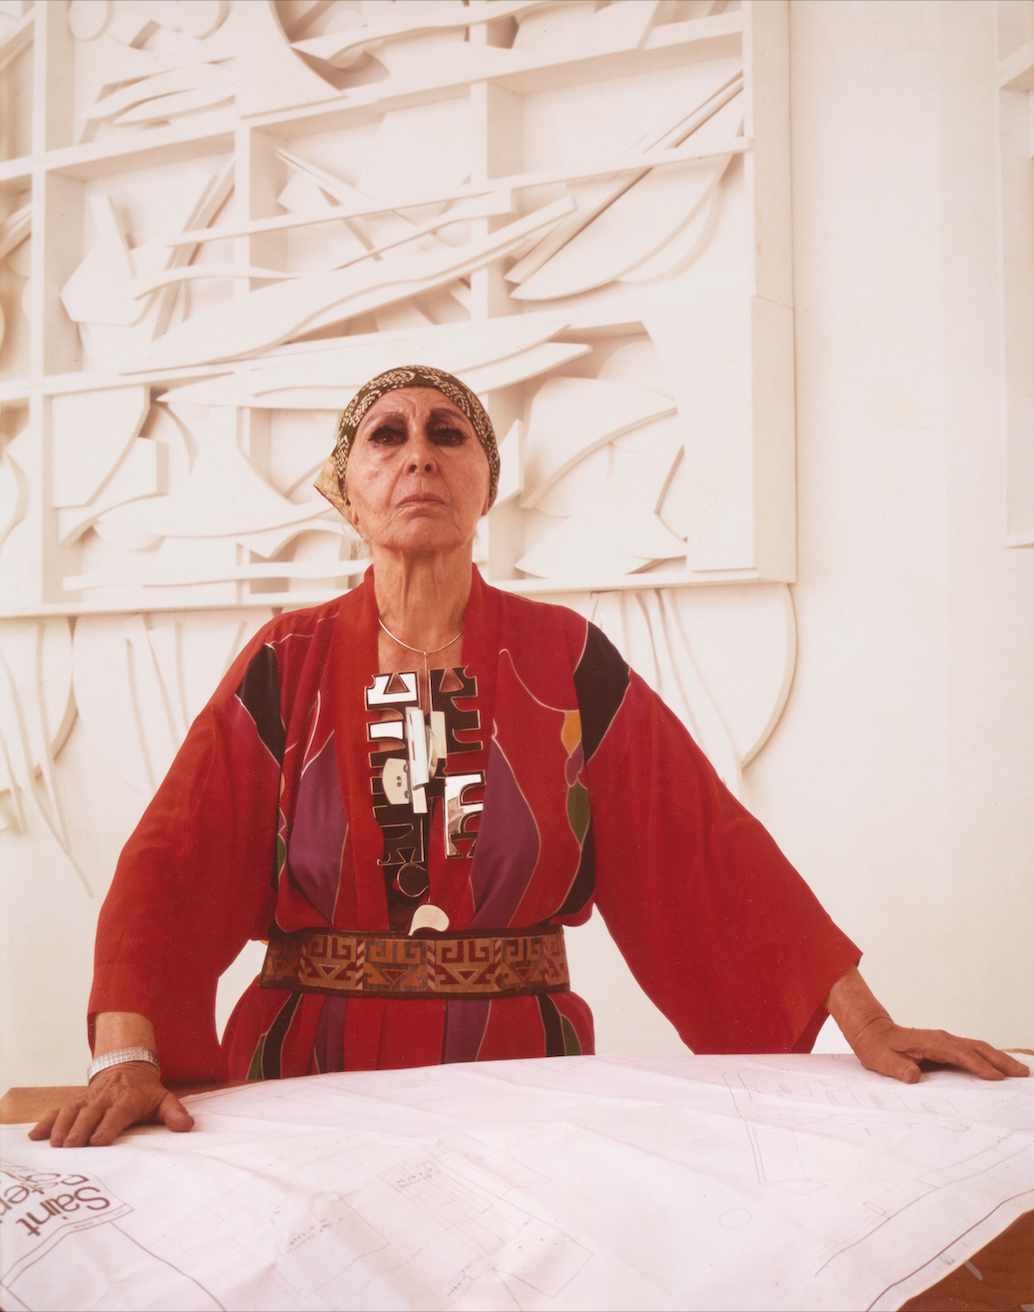 Louise Nevelson , 1977 Photograph by Hans Namuth Courtesy Center for Creative Photography, University of Arizona ©1991 Hans Namuth Estate